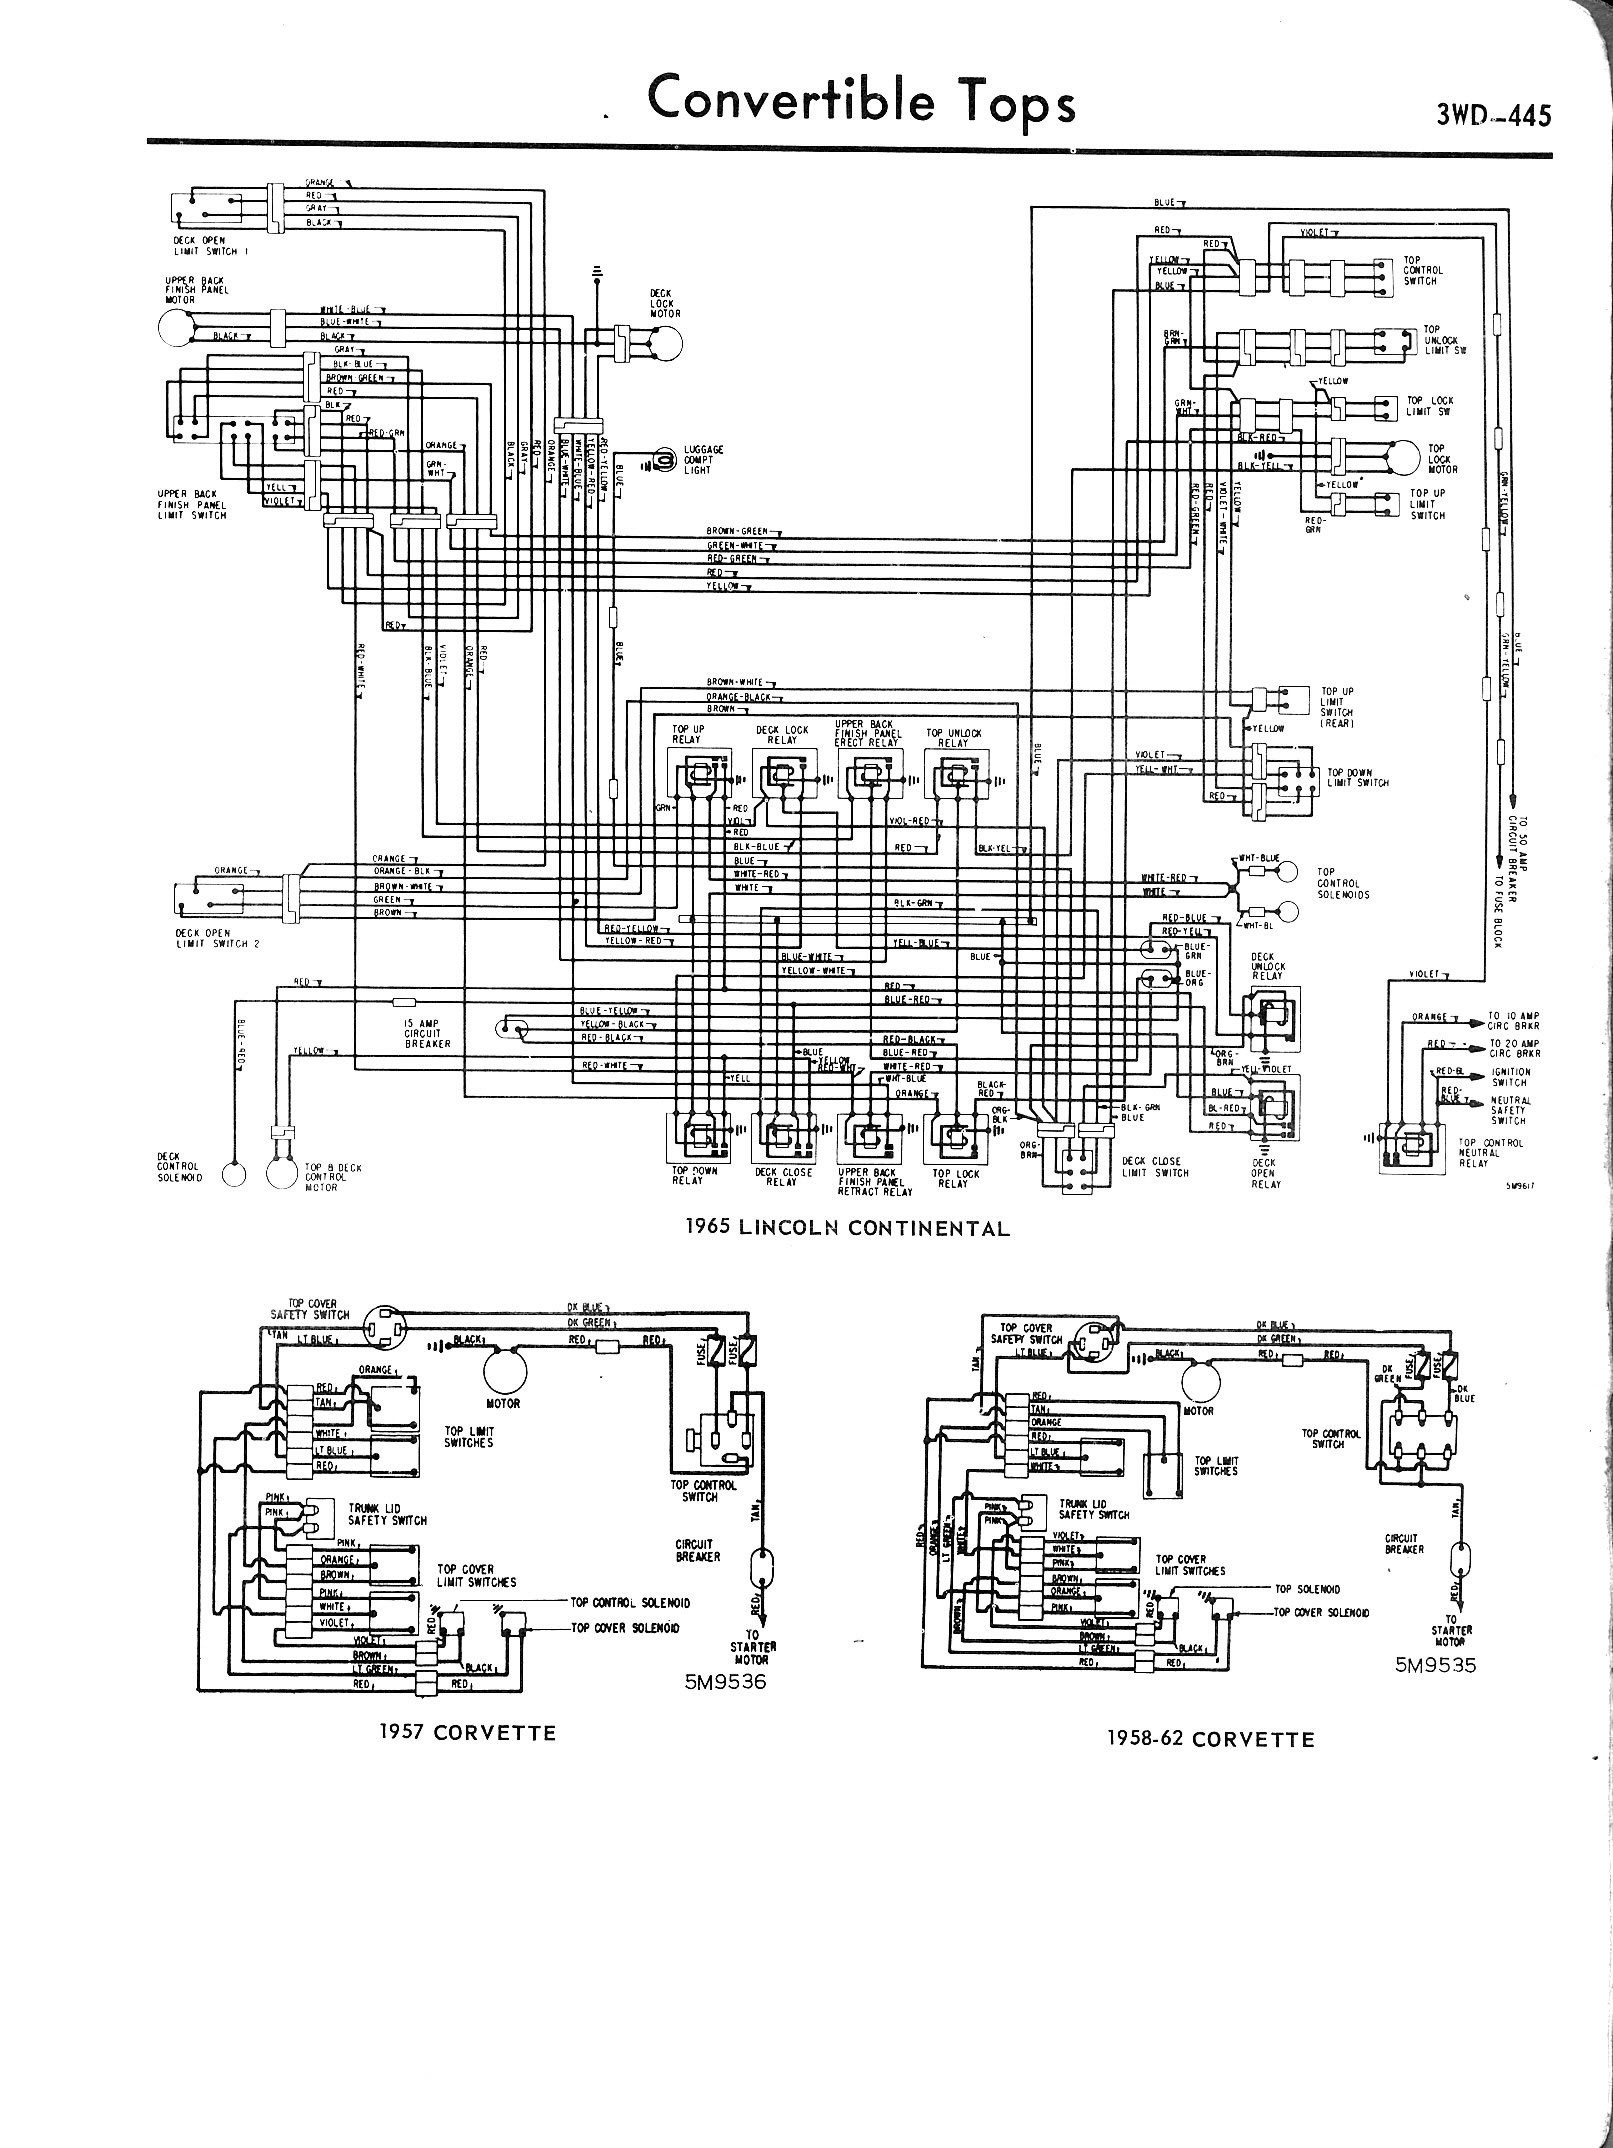 3WD 445_jpg 57 convertible wiring harness conv top trifive com, 1955 chevy 1955 chevy horn wiring diagram at gsmx.co